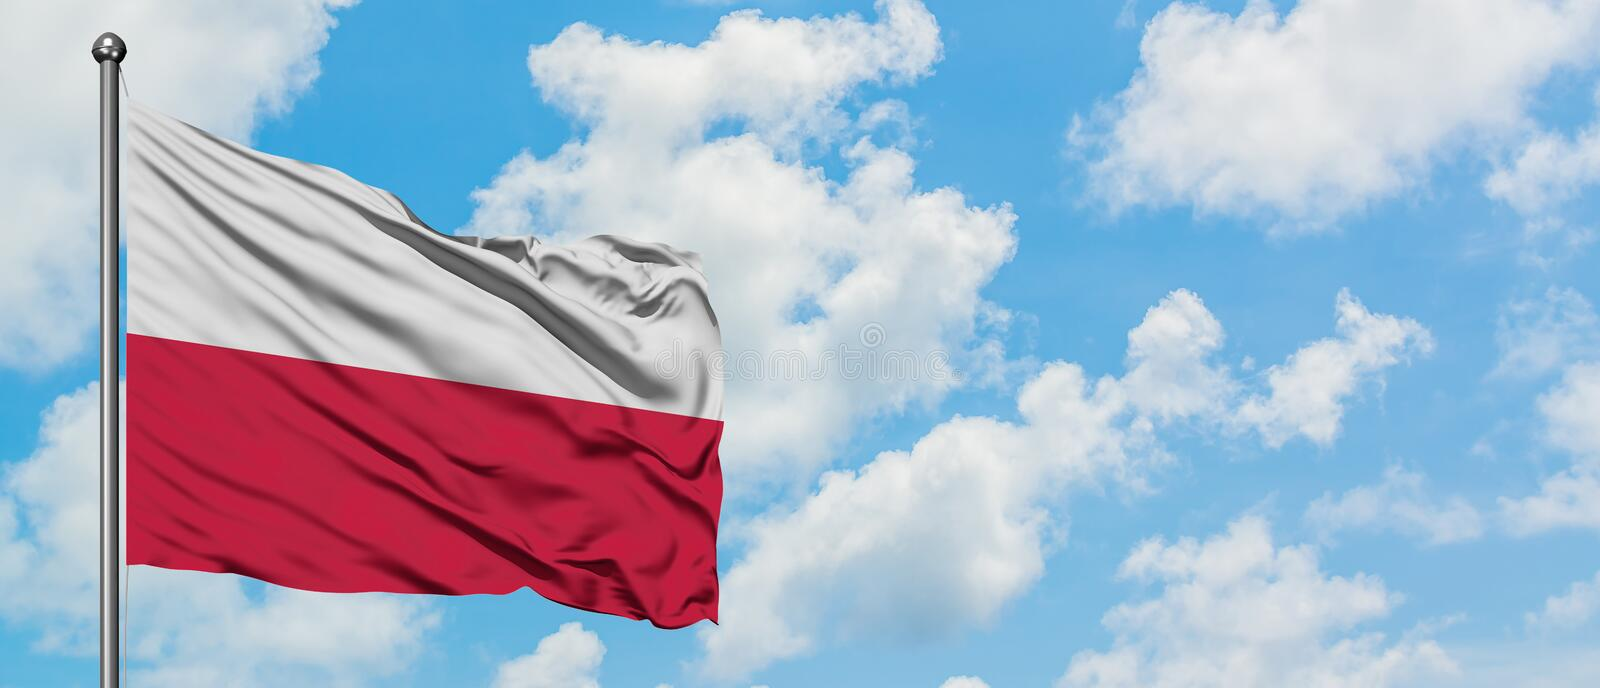 Poland flag waving in the wind against white cloudy blue sky. Diplomacy concept, international relations.  royalty free stock photography